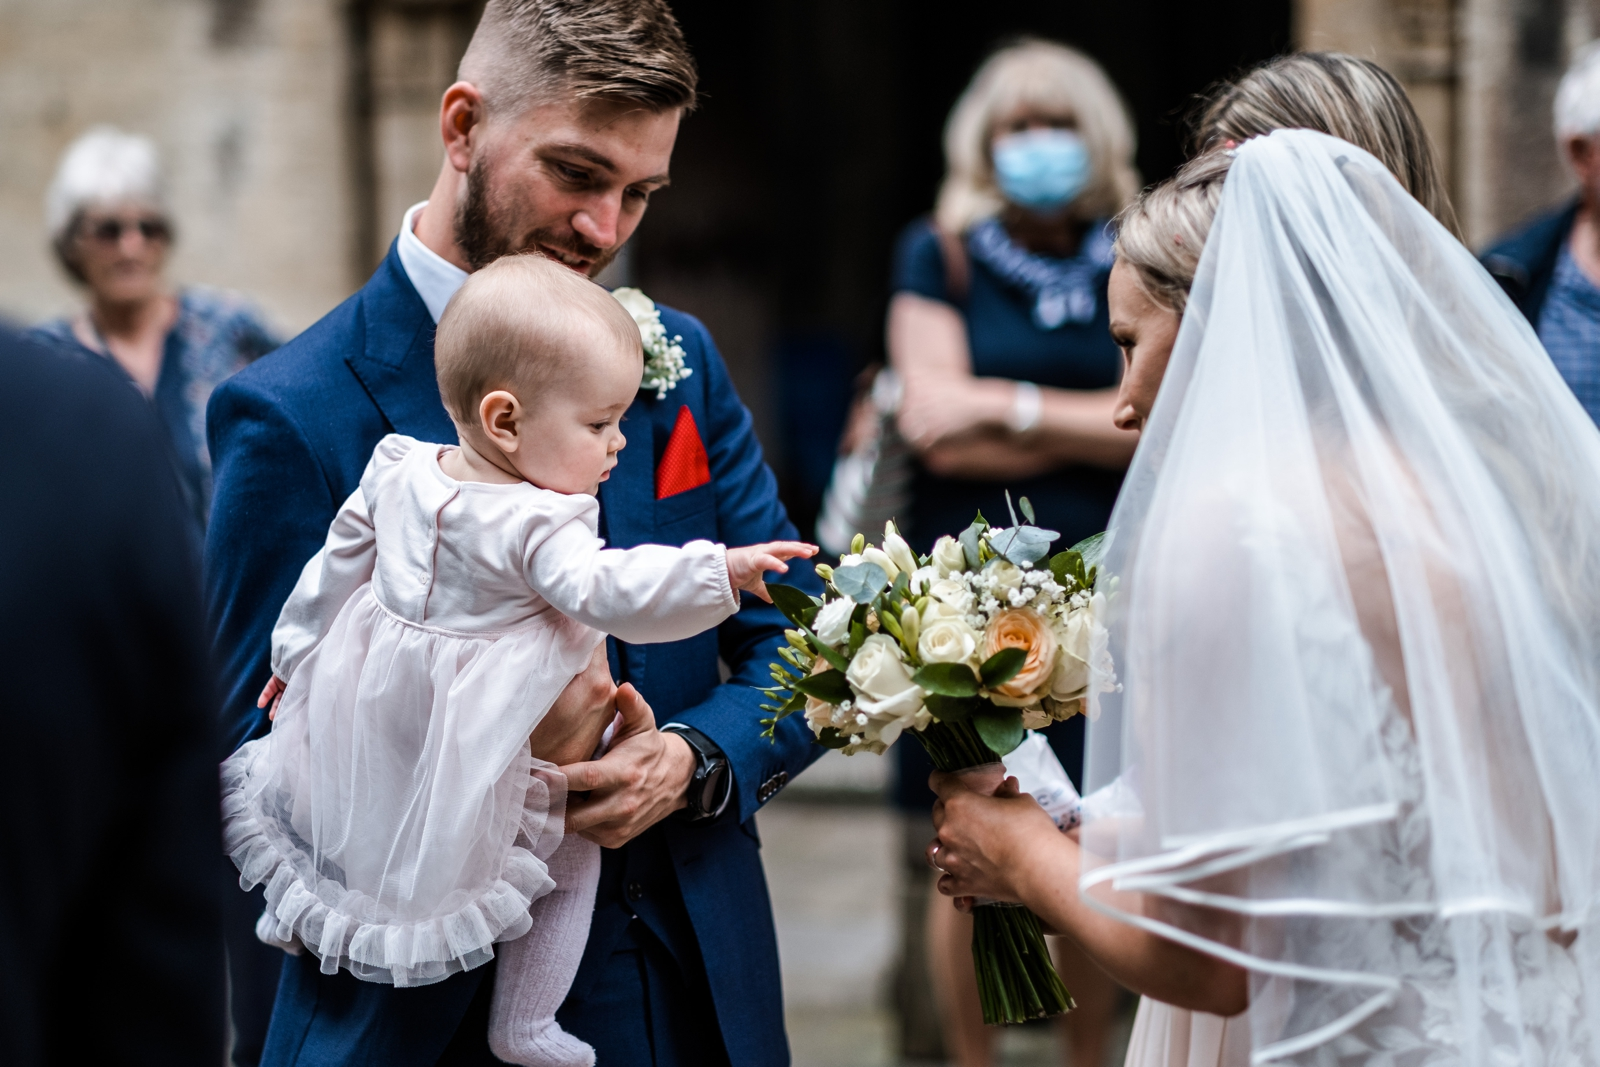 Baby reaches for bride's flowers